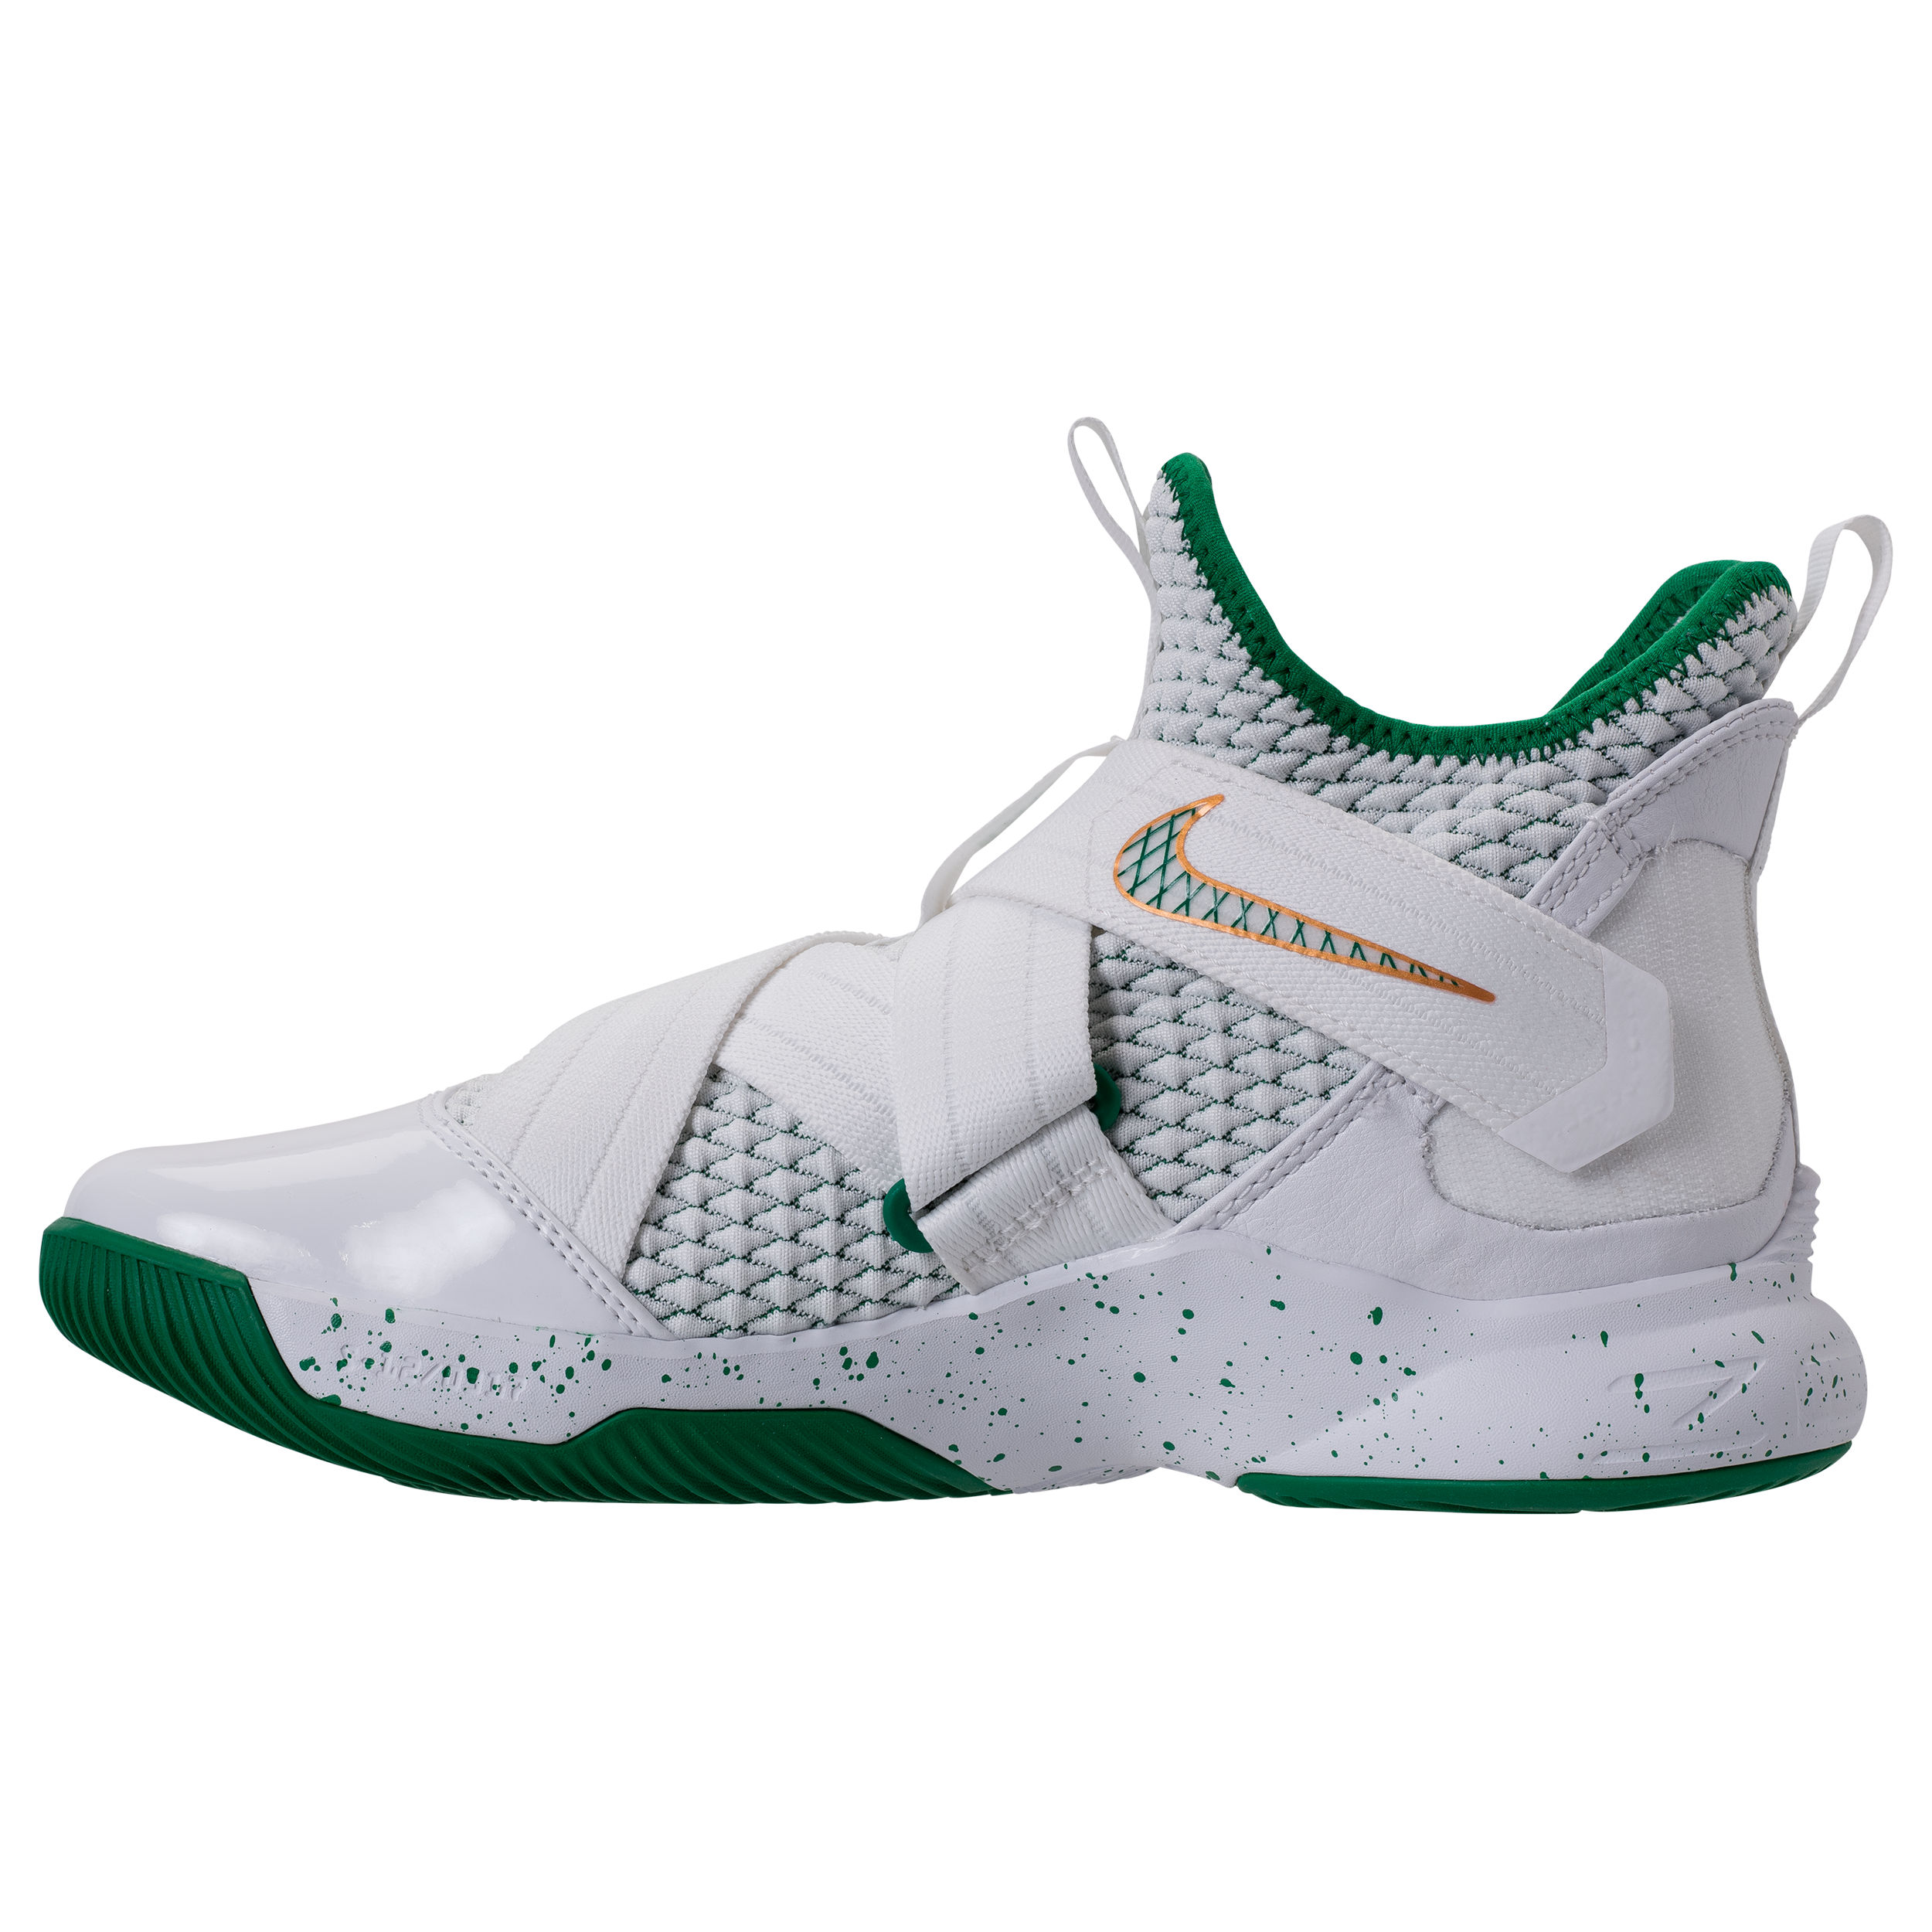 a008dc24d263 Nike LeBron Soldier 12 SVSM 4 - WearTesters